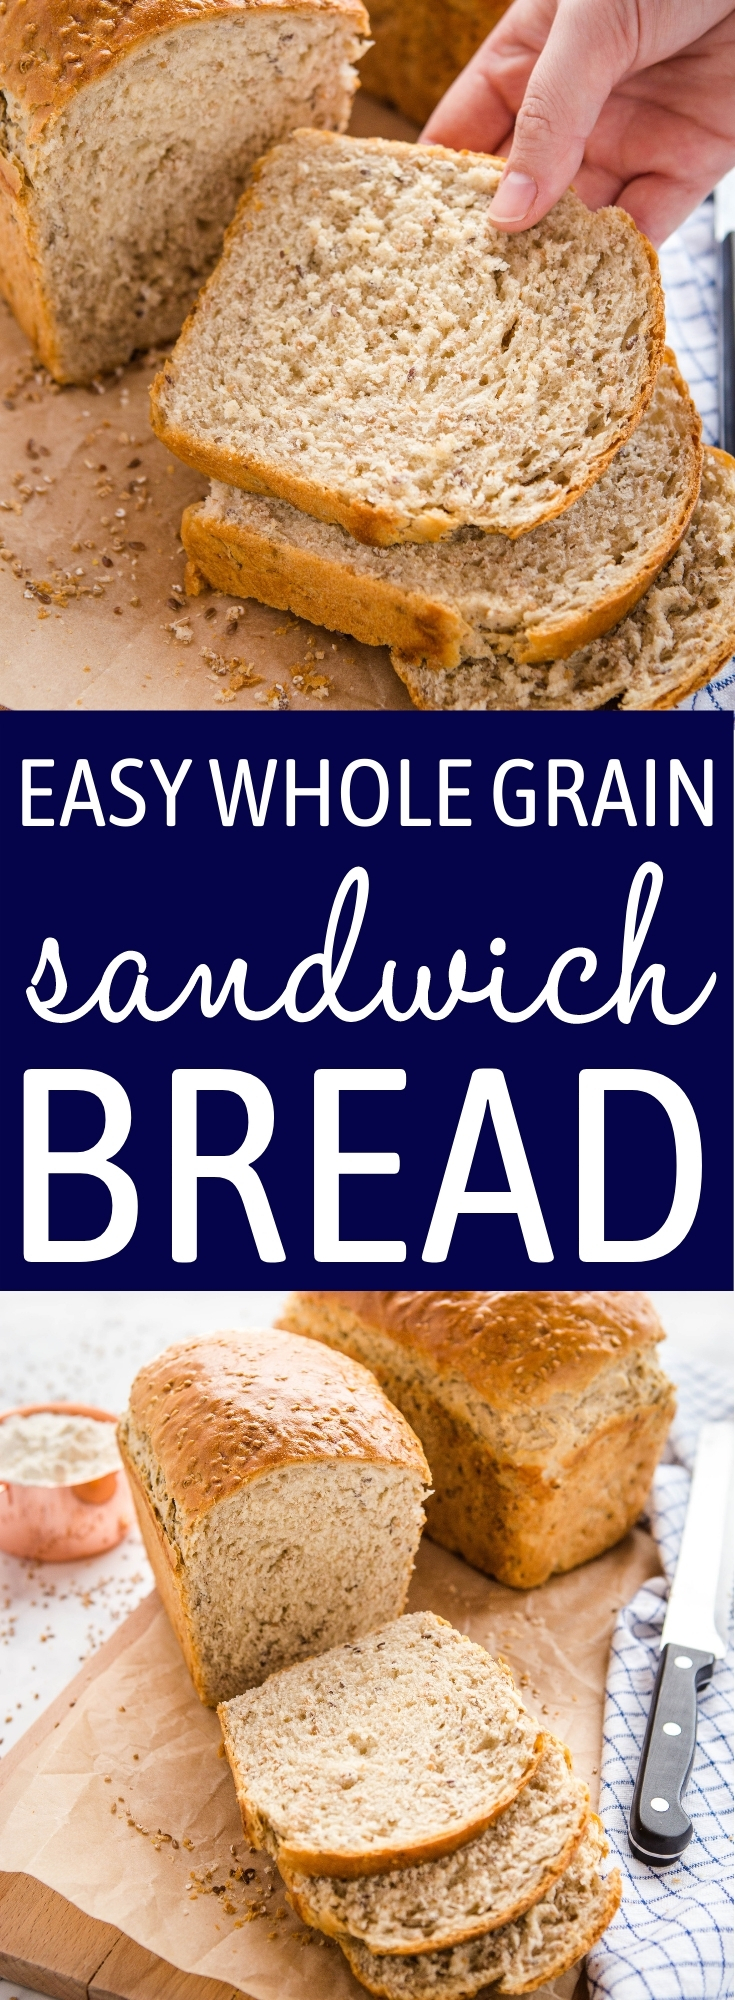 This Easy Whole Grain Sandwich Bread is a rustic-looking sandwich loaf that's perfectly soft and fluffy, full of fibre and whole grain goodness and perfect for school lunches or serving with your favourite soups or stews. Recipe from thebusybaker.ca! #wholegrains #wholegrainbread #healthy #sandwich #schoollunch #homemade #bread via @busybakerblog